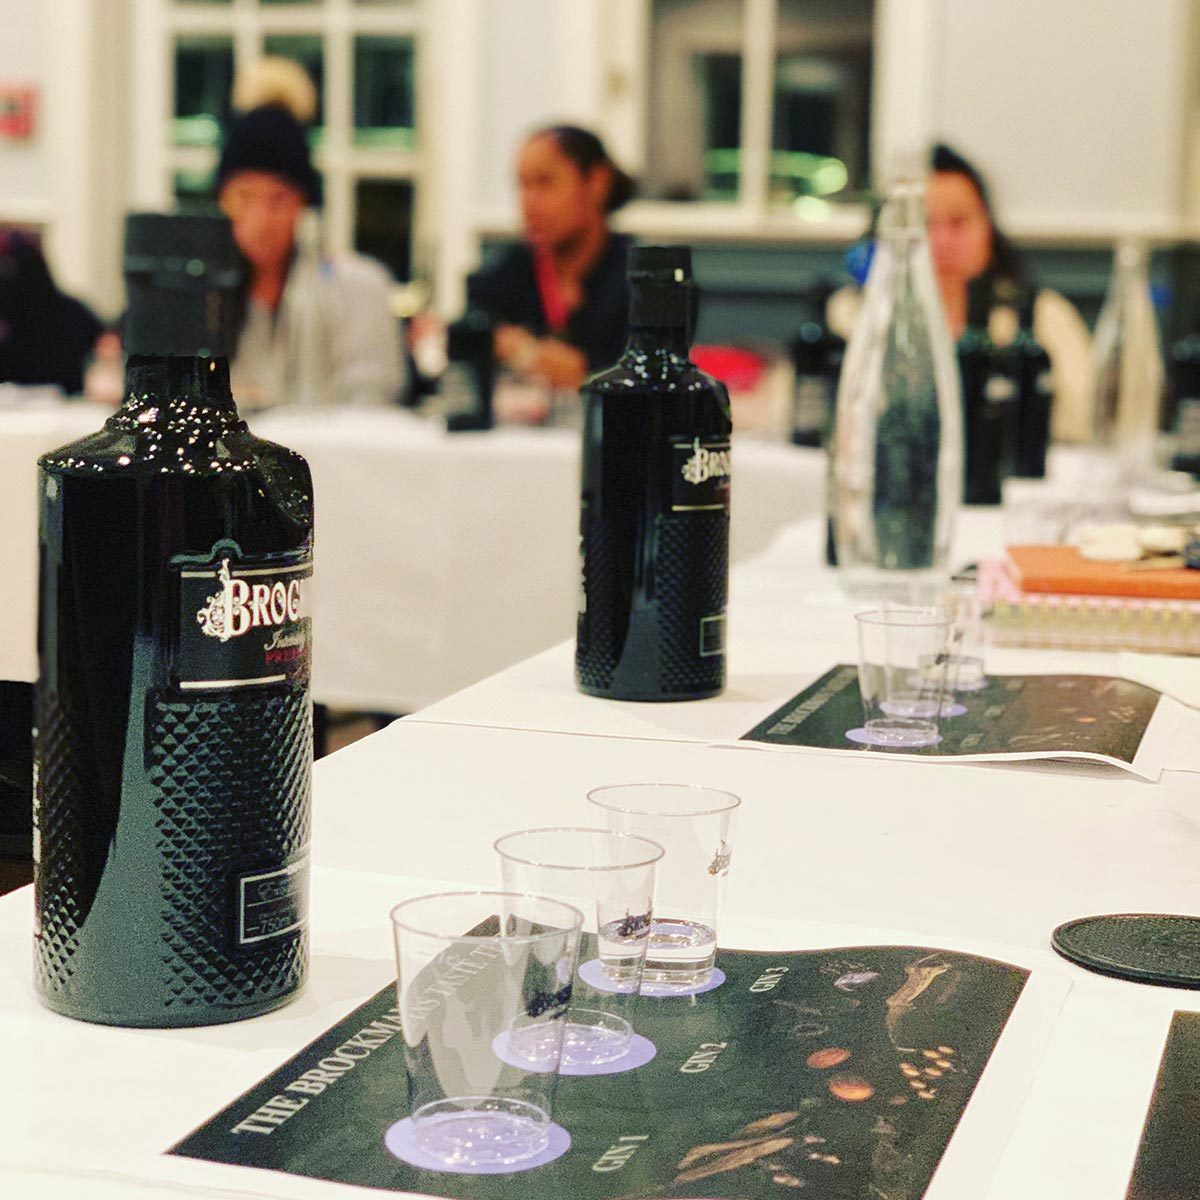 Brockmans Gin Brand Session Educates Promotion Team Members